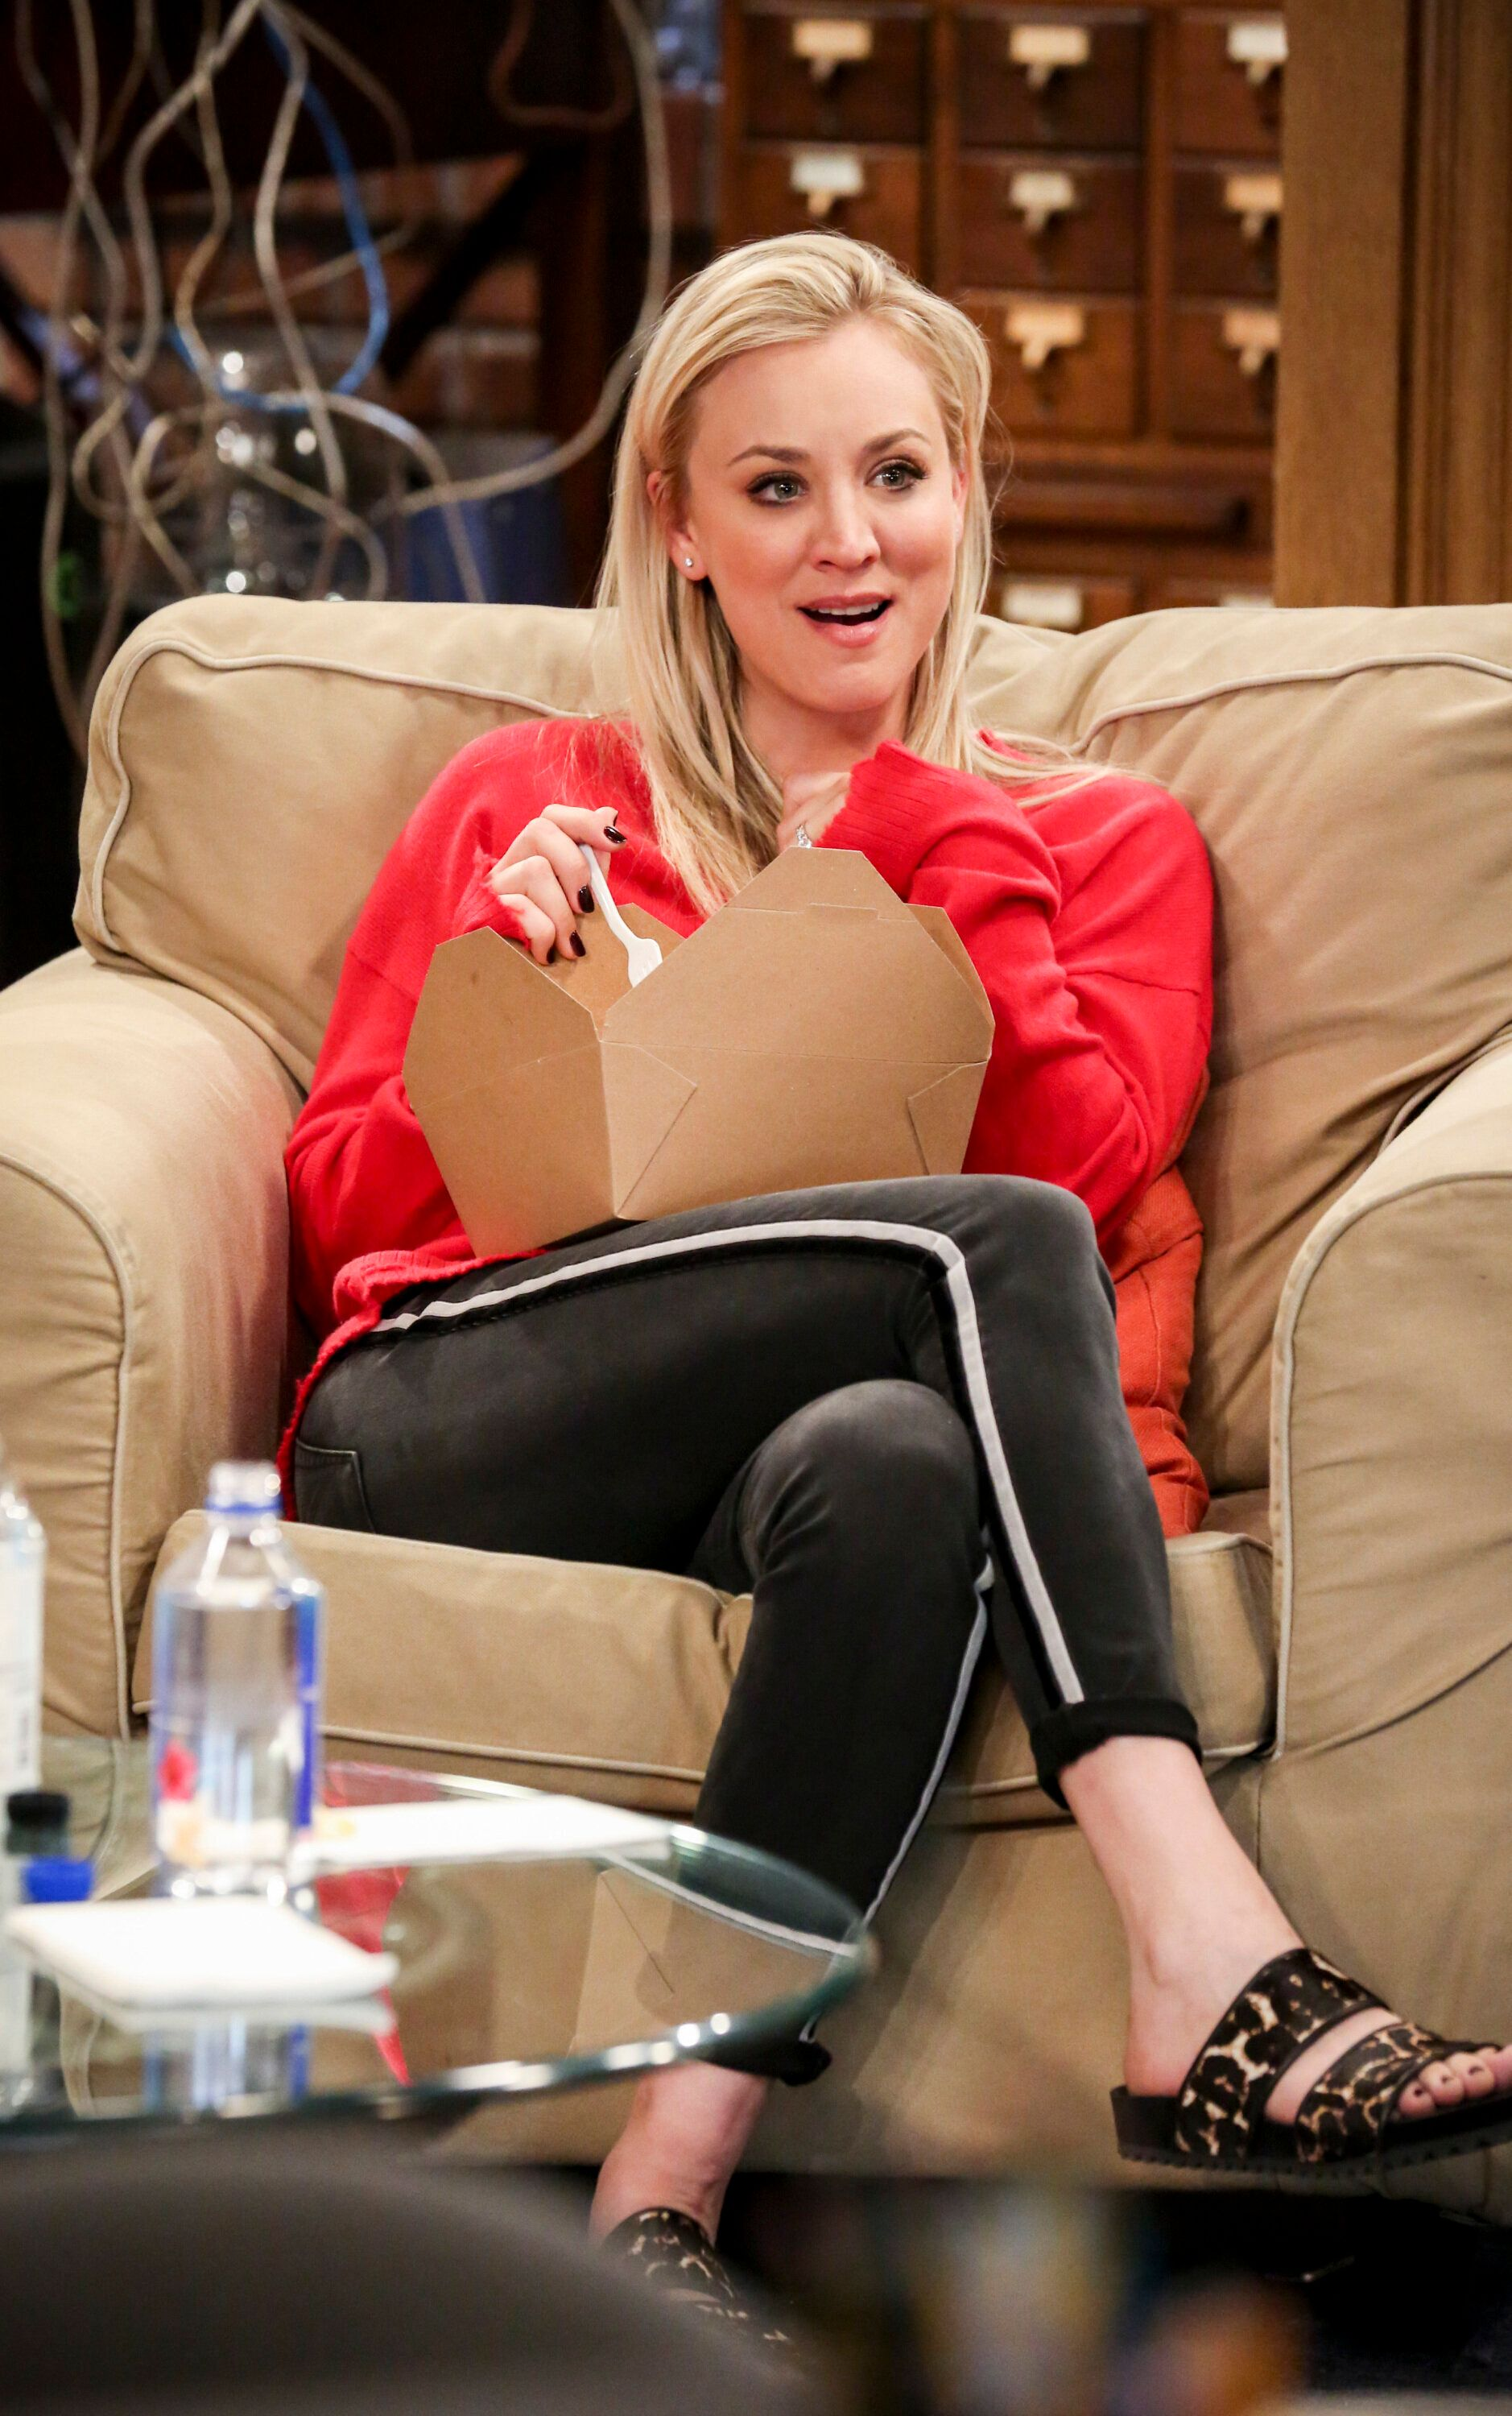 """LOS ANGELES - FEBRUARY 25: """"The Laureate Accumulation"""" -- Pictured: Penny (Kaley Cuoco). When competitors Pemberton (Sean Astin) and Campbell (Kal Penn) charm America on a publicity tour, Sheldon and Amy try to bring Nobel laureates Kip Thorne, George Smoot and Frances Arnold to their side. Also, Halley's fear of the dark leads to opportunity and conflict for Howard, Bernadette and Stuart, on THE BIG BANG THEORY, Thursday, April 4 (8:00-8:31 PM, ET/PT) on the CBS Television Network. (Photo by Michael Yarish/CBS via Getty Images)"""